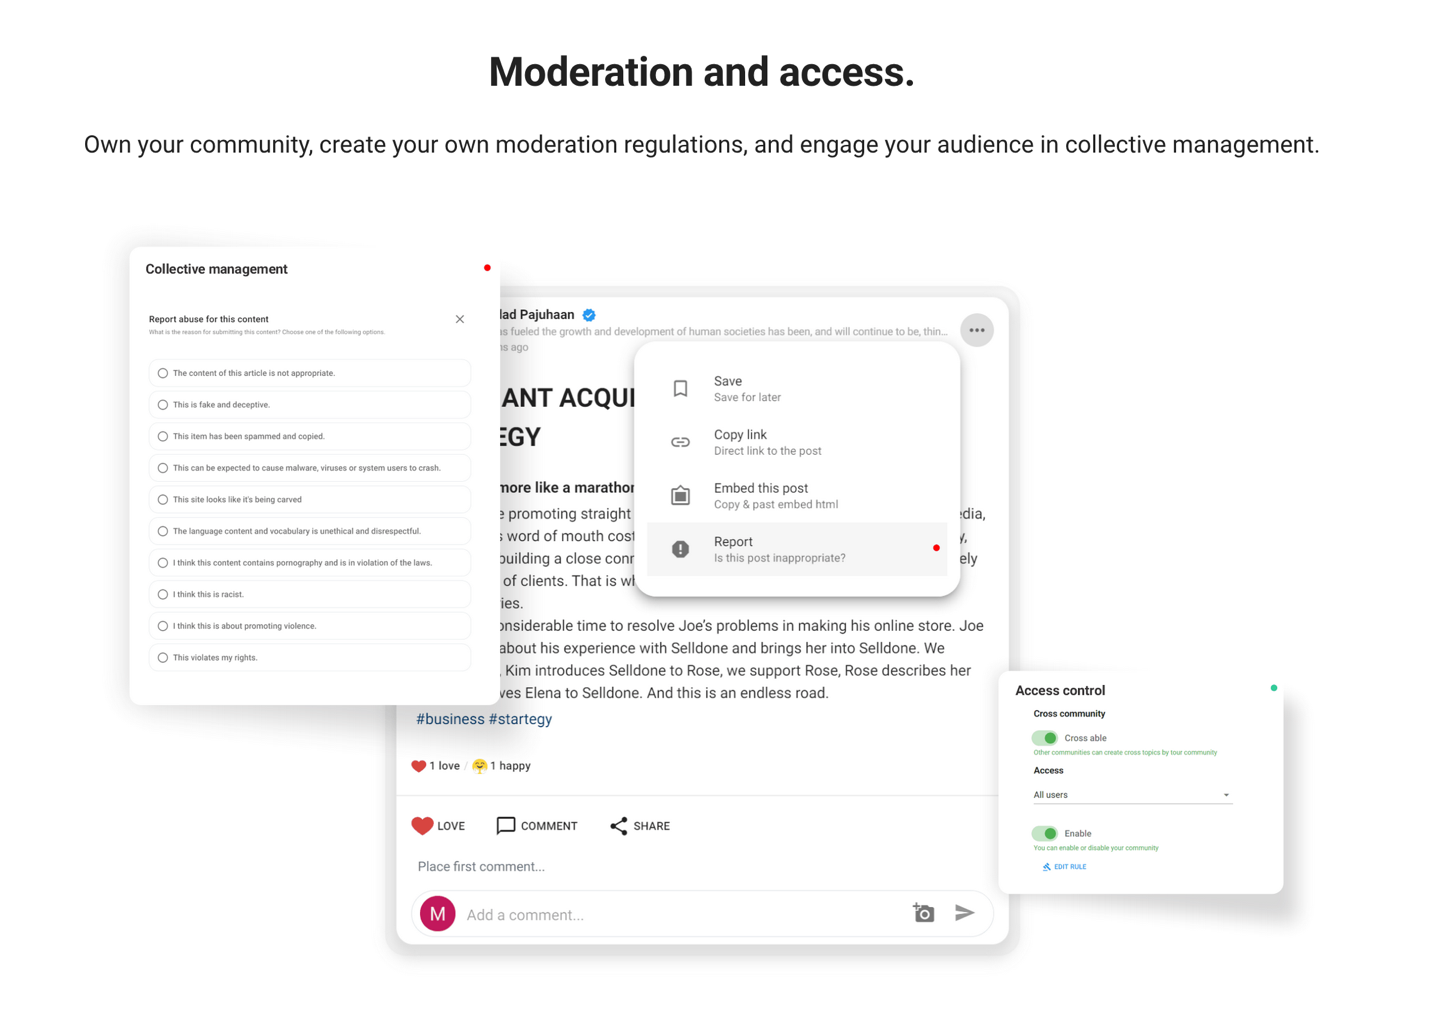 Community moderation and users engagement